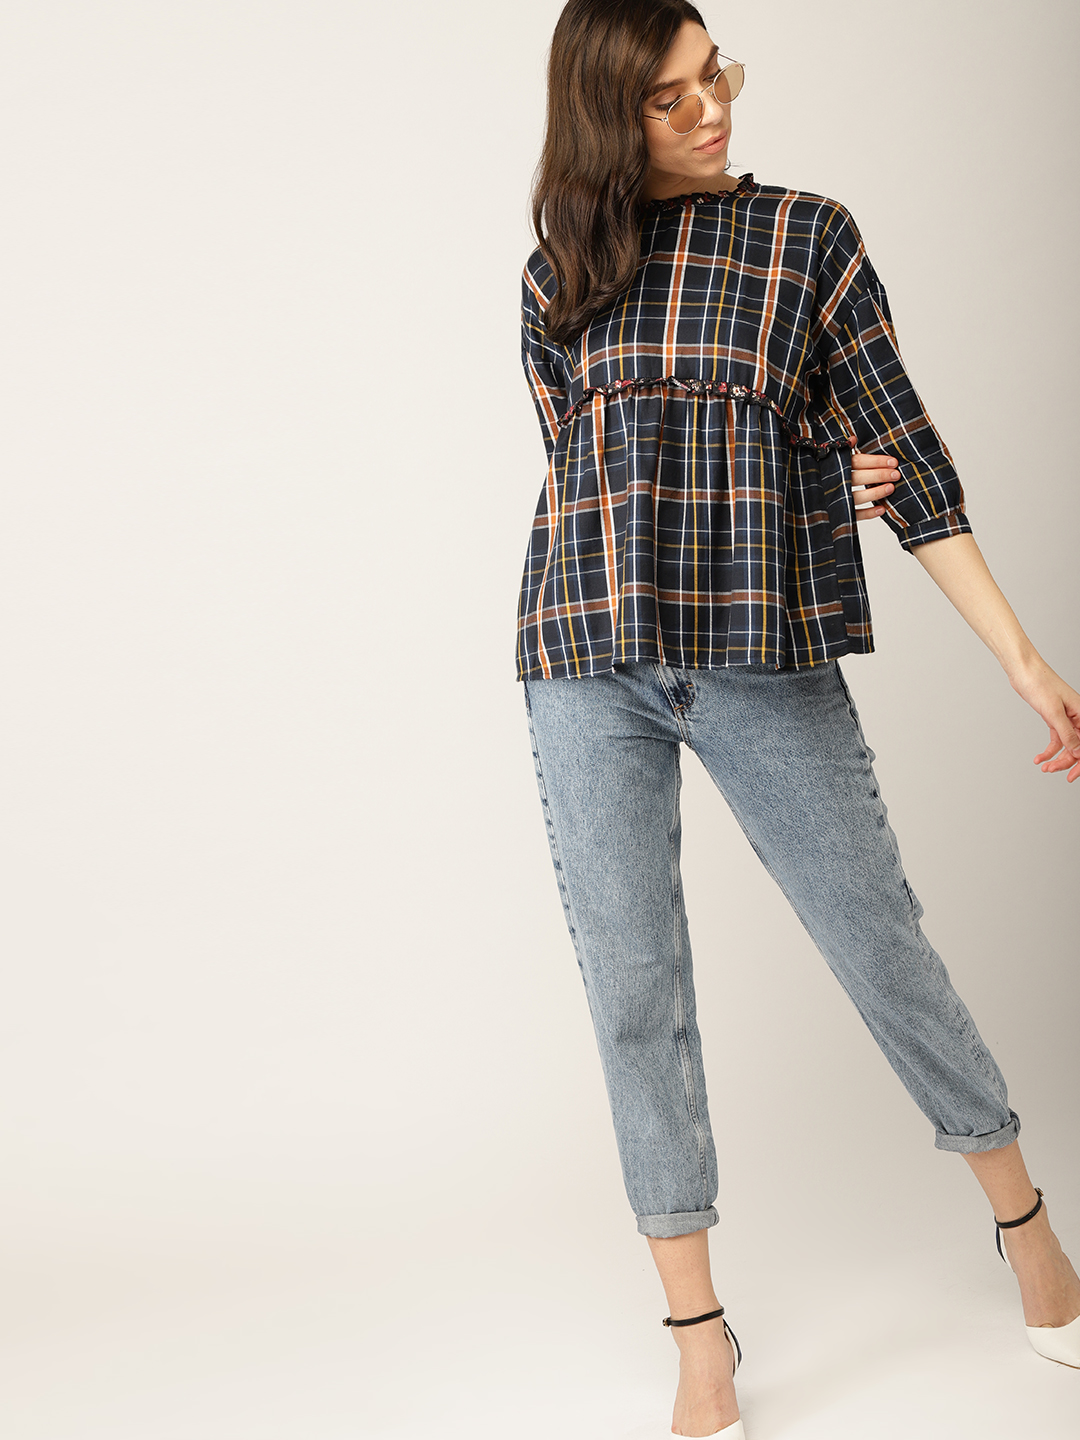 14-types-of-tops-Women-Navy-Brown-Checked-Empire-Top